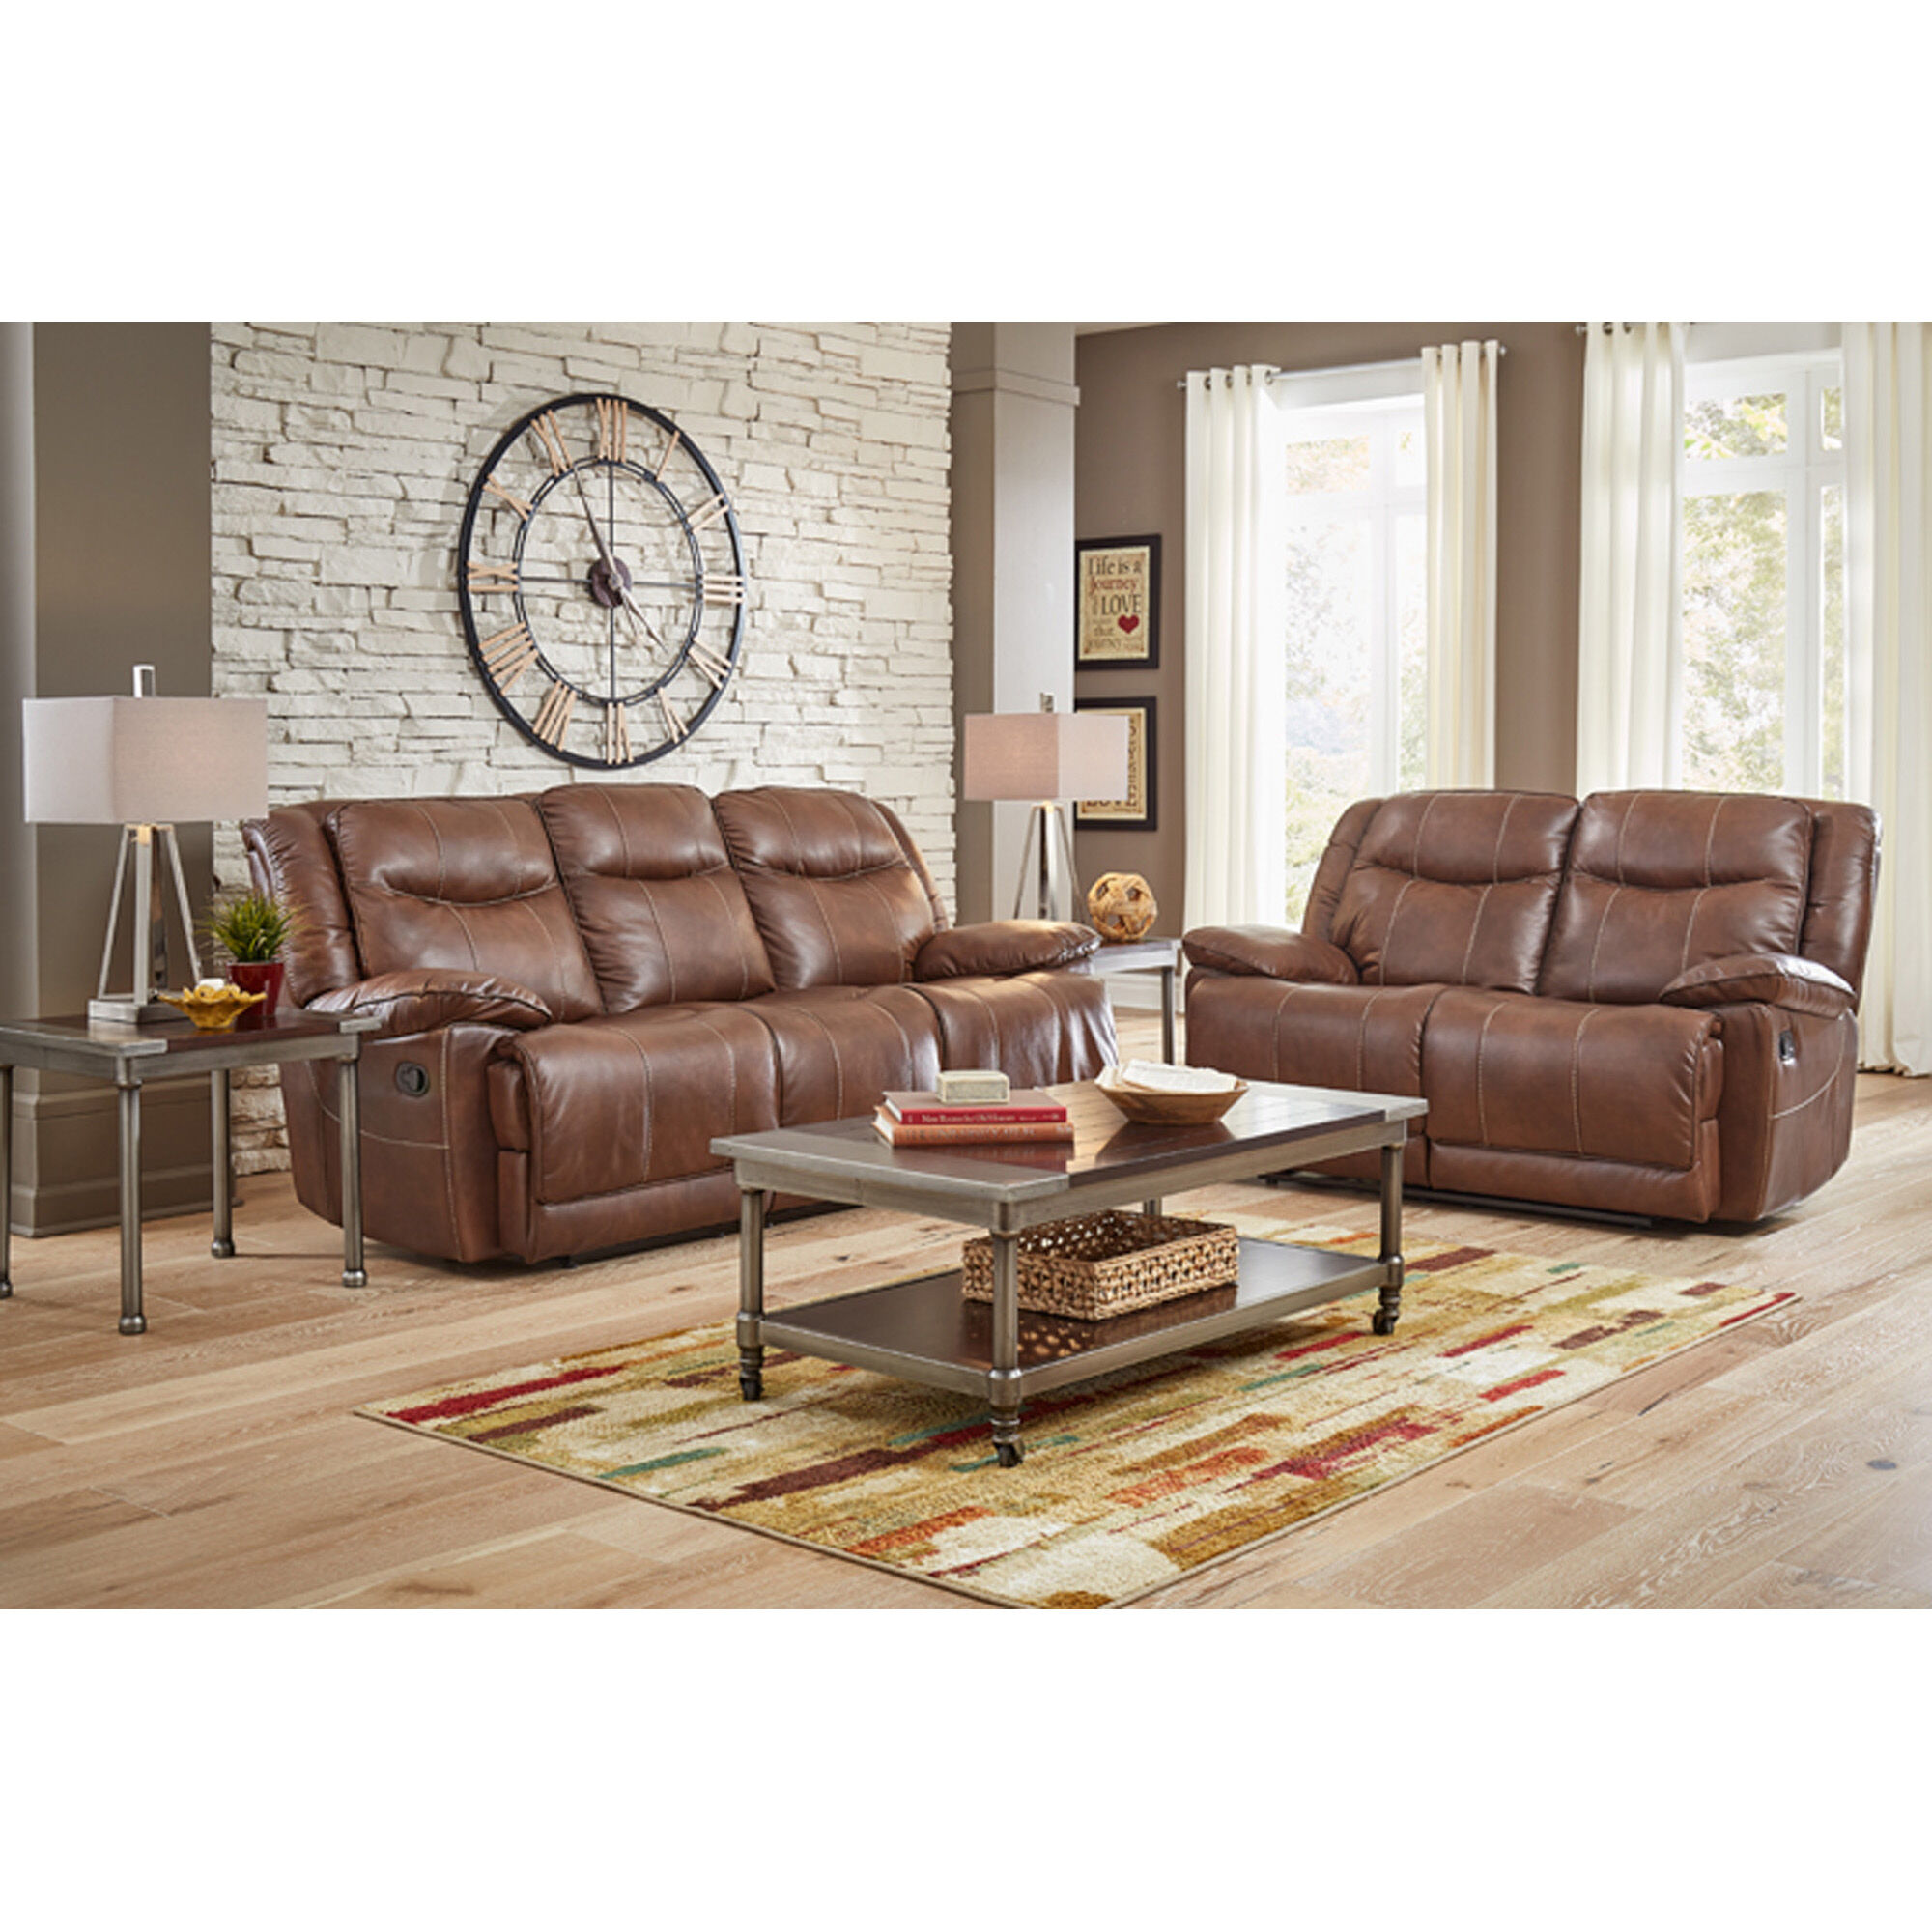 Amalfi Living Room Sets 7Piece Barron Reclining Living Room Collection